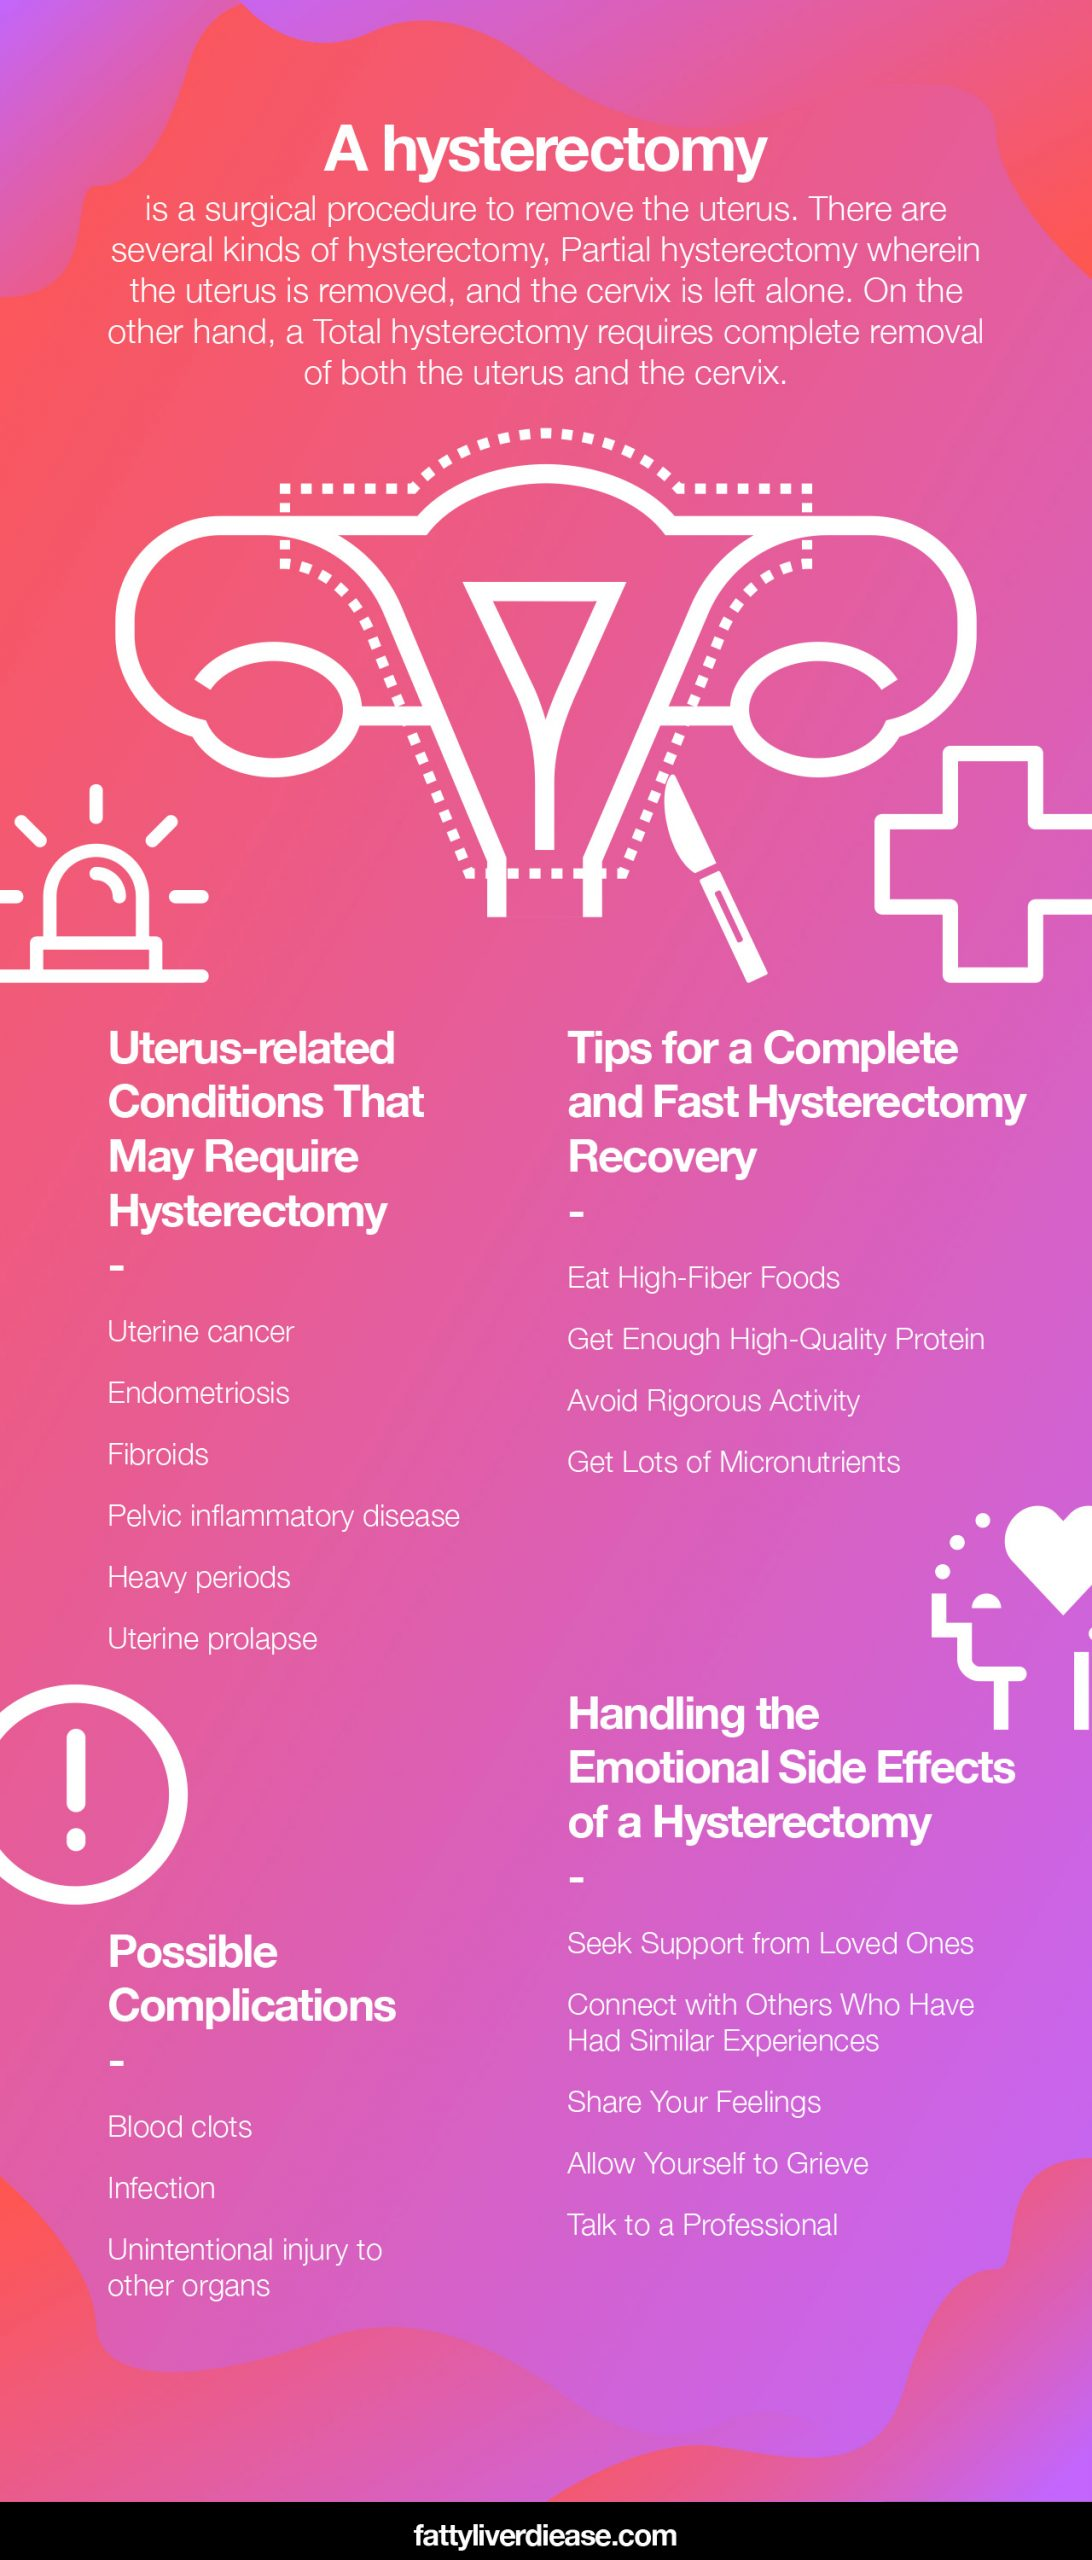 Tips for a Complete and Fast Hysterectomy Recovery